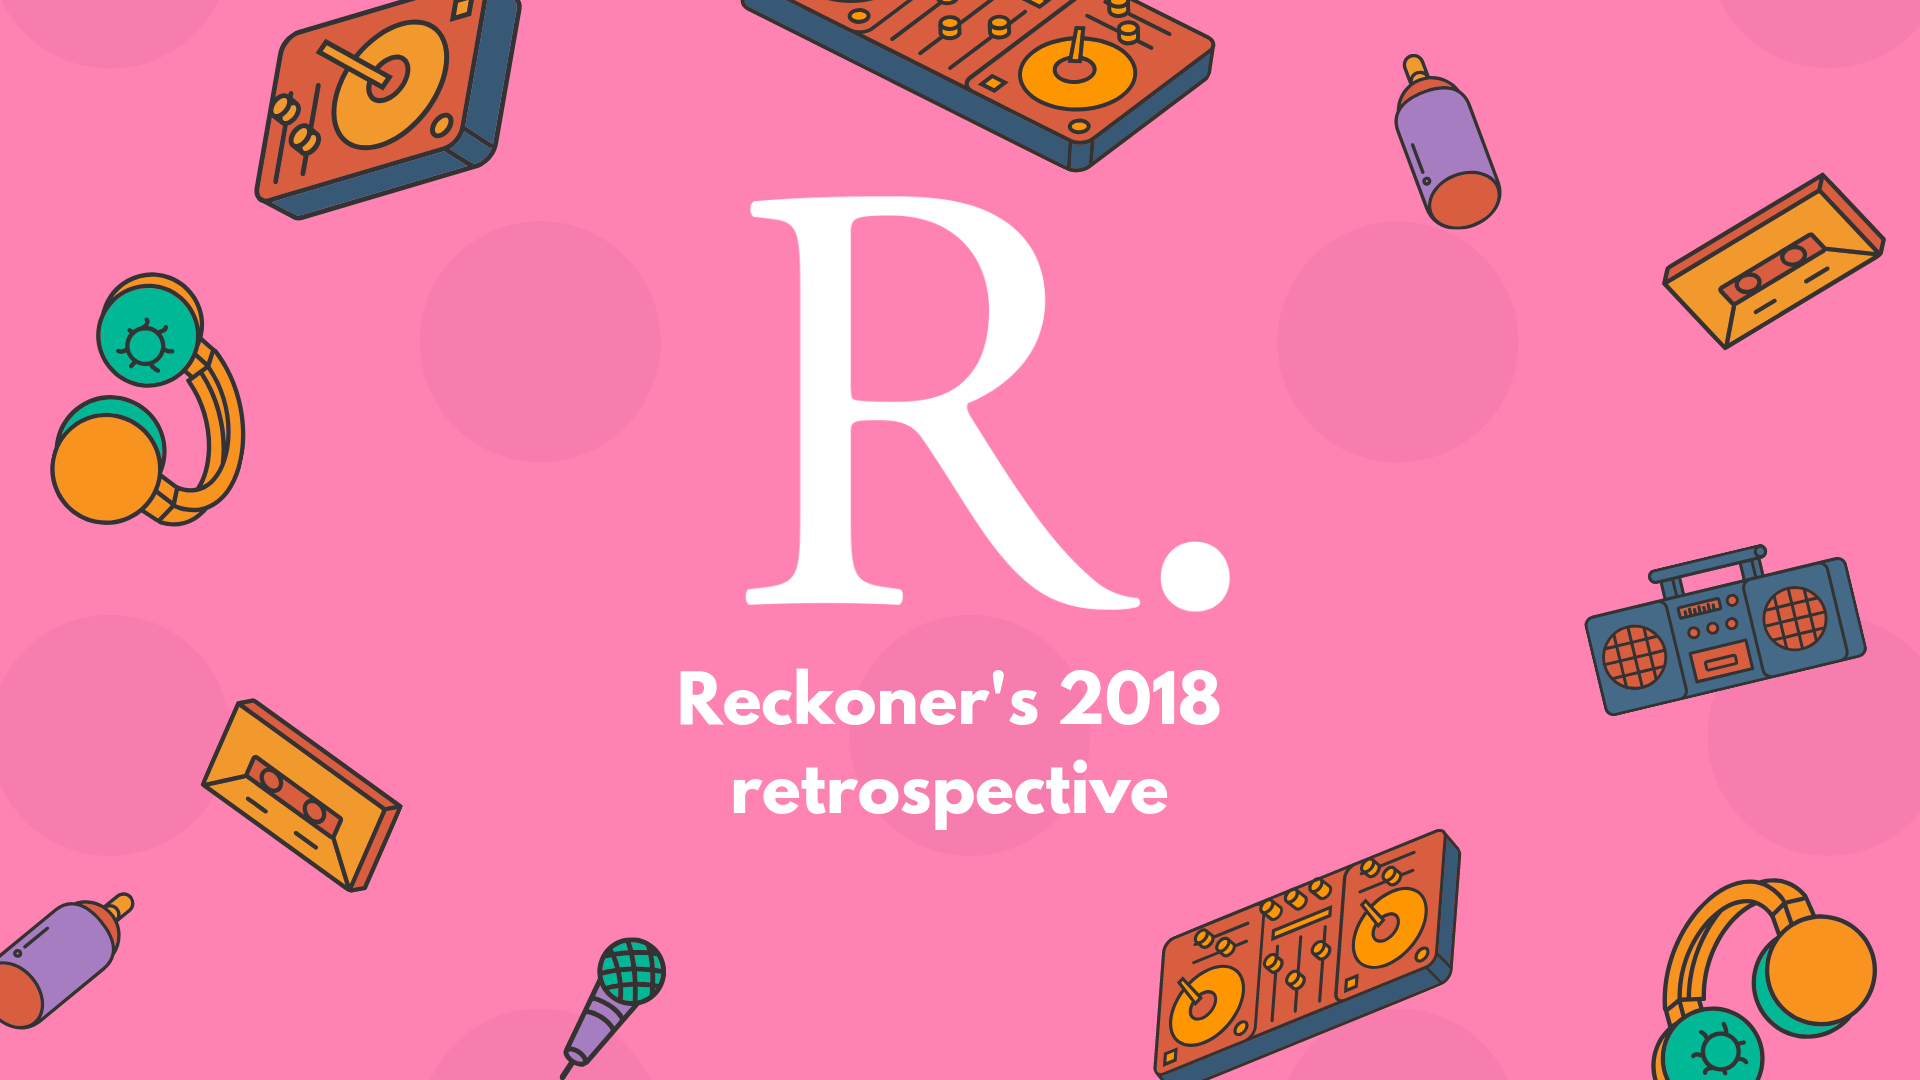 Reckoner's 2018 retrospective